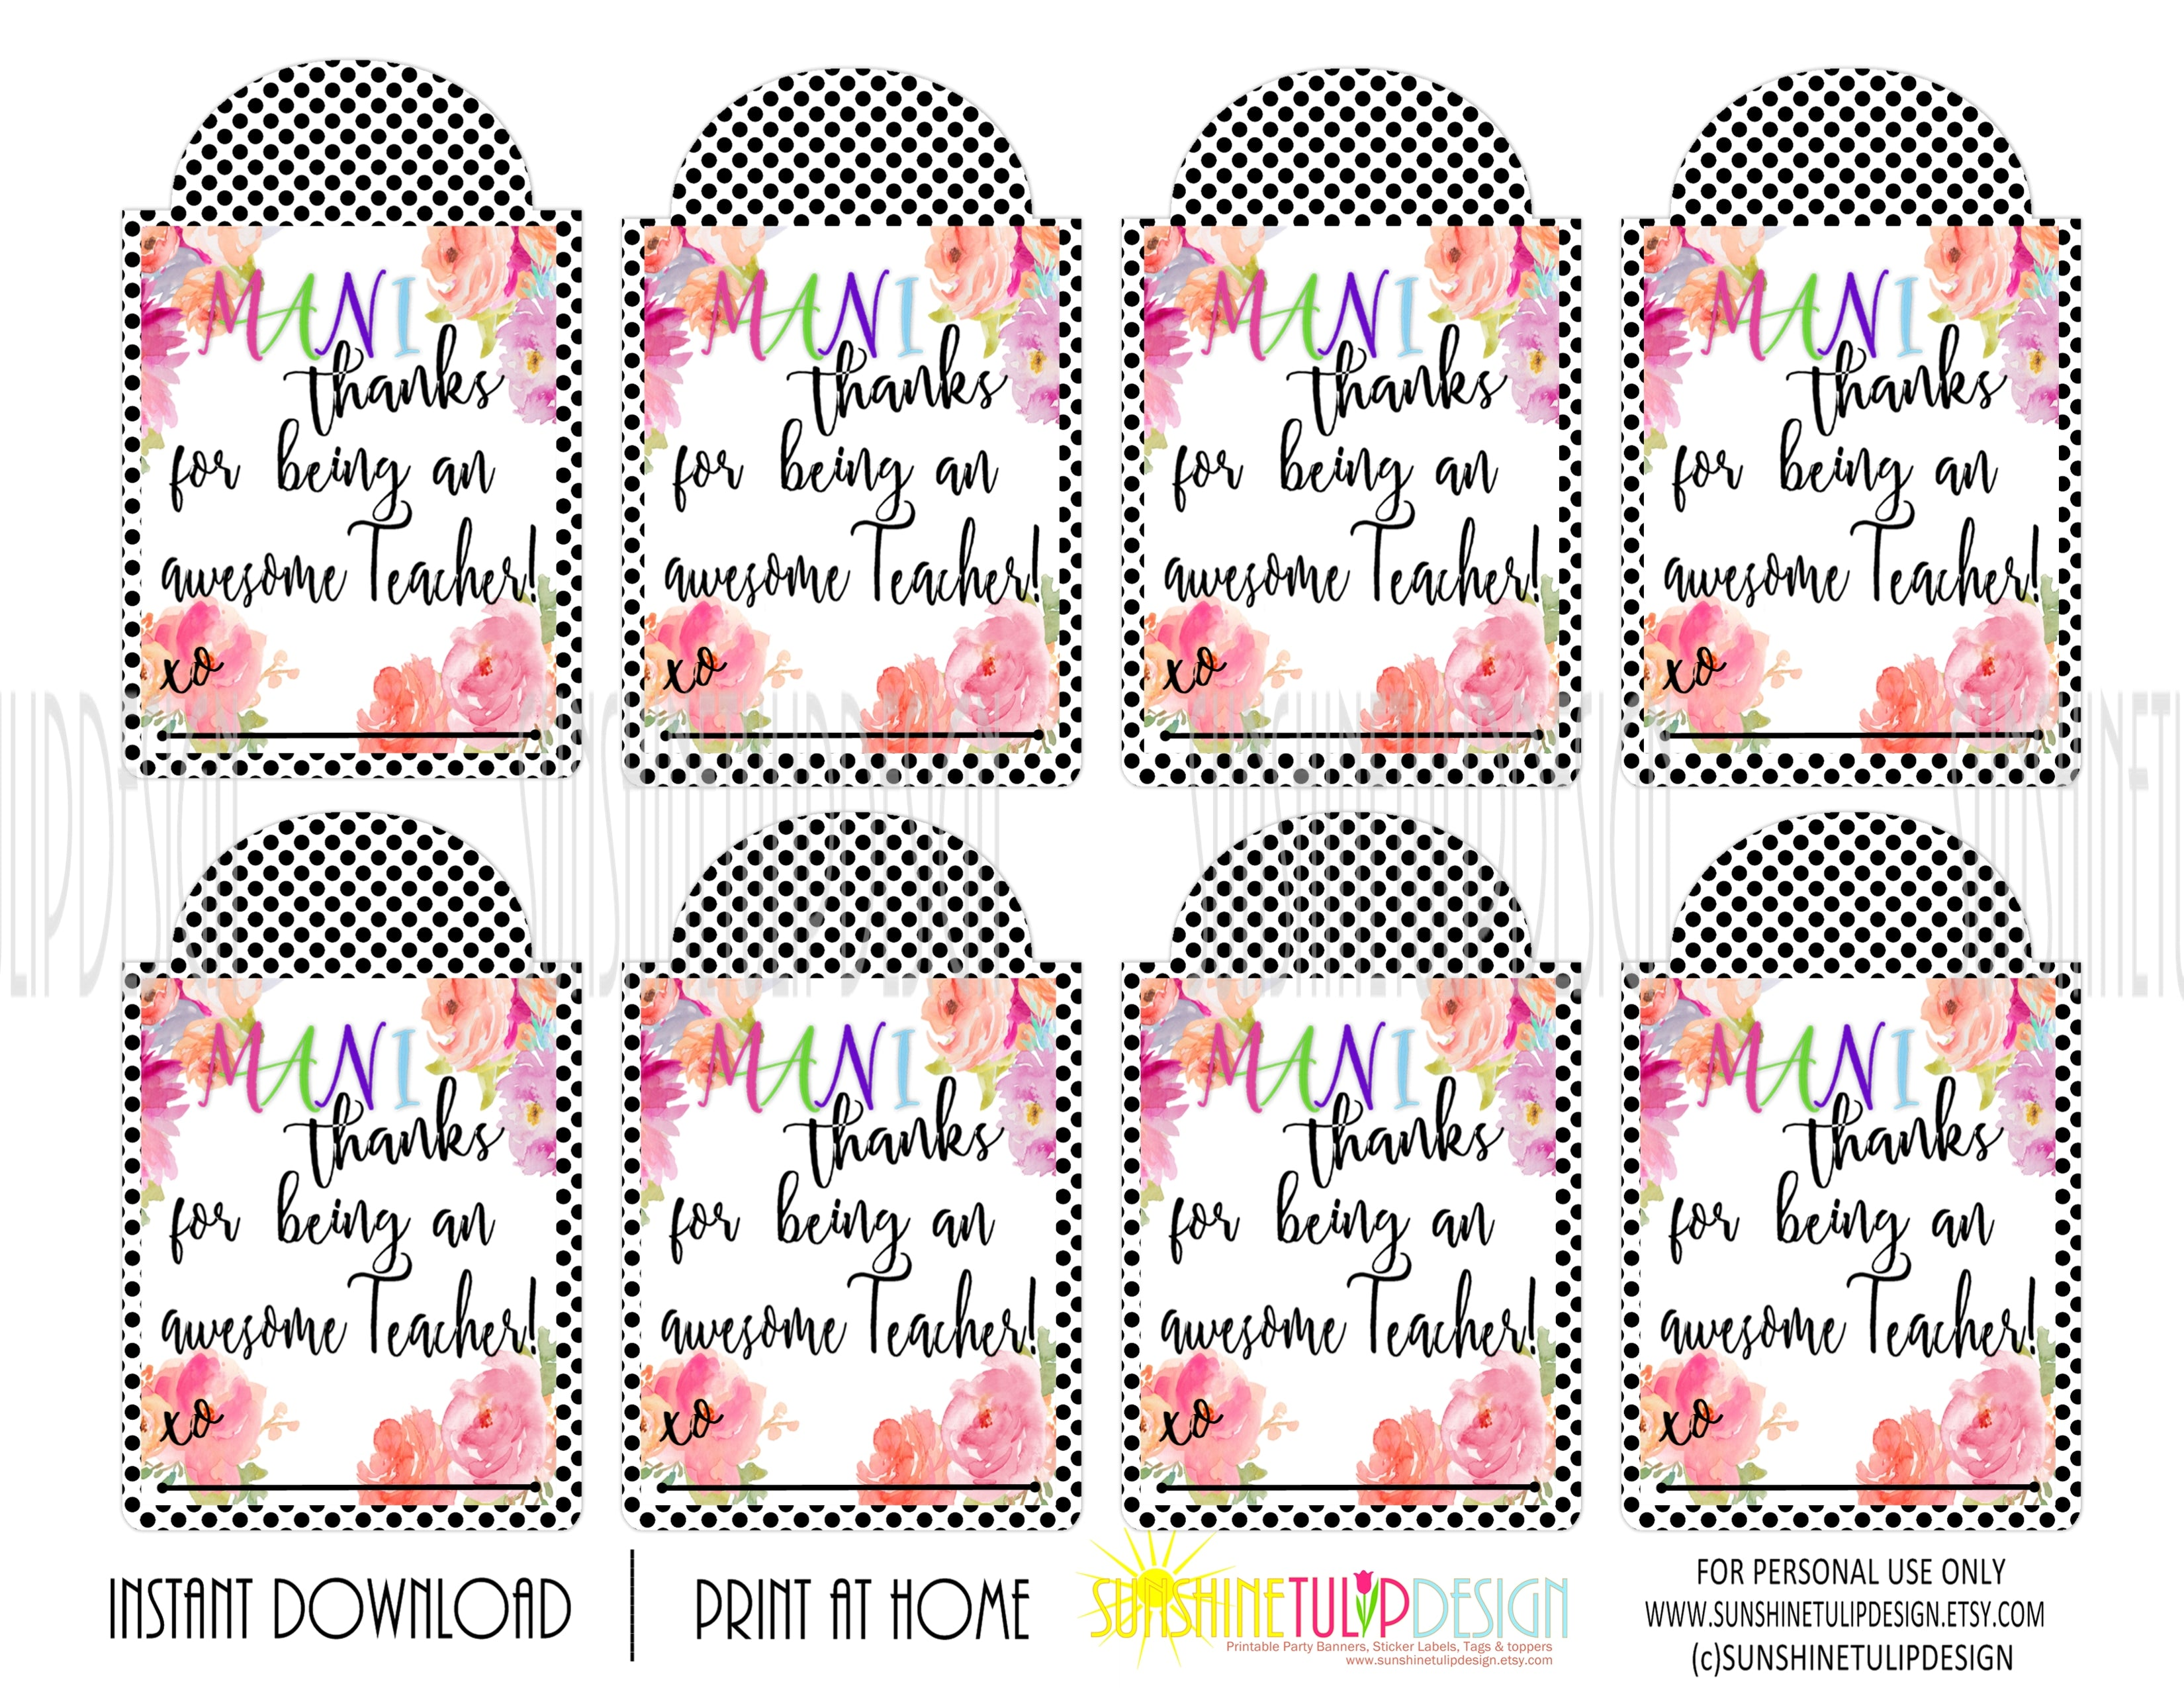 photo regarding Printable Gift Tag named Printable Trainer Appreciation Mani Because of Reward Tags, Nail Polish Appreciation Present Tags by means of SUNSHINETULIPDESIGN